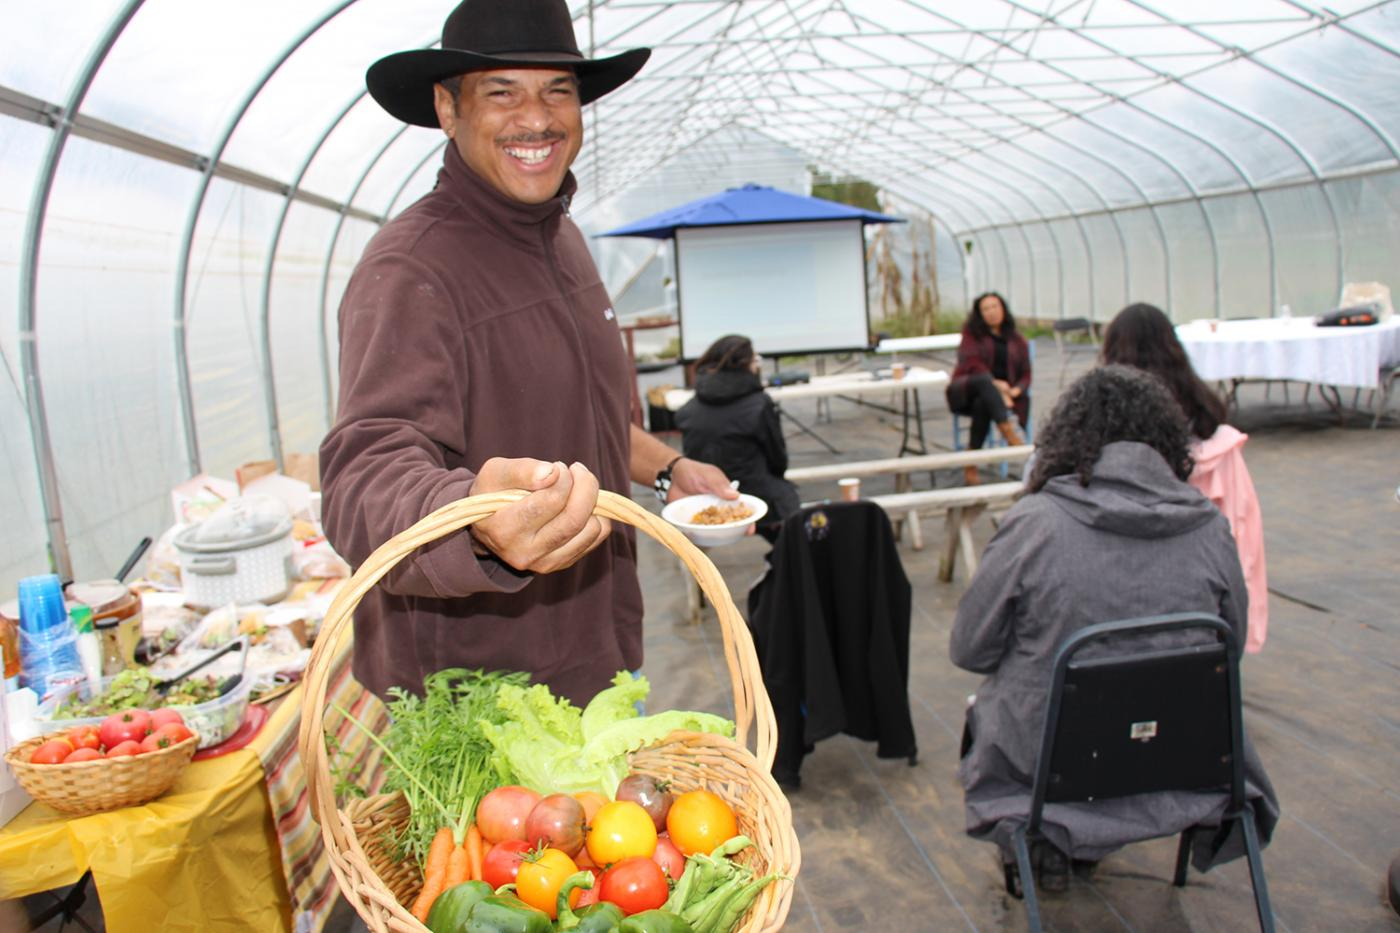 "Cassius Spears, founder of the Narragansett Food Sovereignty Initiative and caretaker of the Crandall ""minacommuck"" Farm, smiles facing the camera while holding a basket full of  freshly picked carrots, tomatoes, green beans, and peppers in a high tunnel at the Markets & Marketing workshop. A lunch buffet table is behind Cassius and workshop participants are seated in the background."